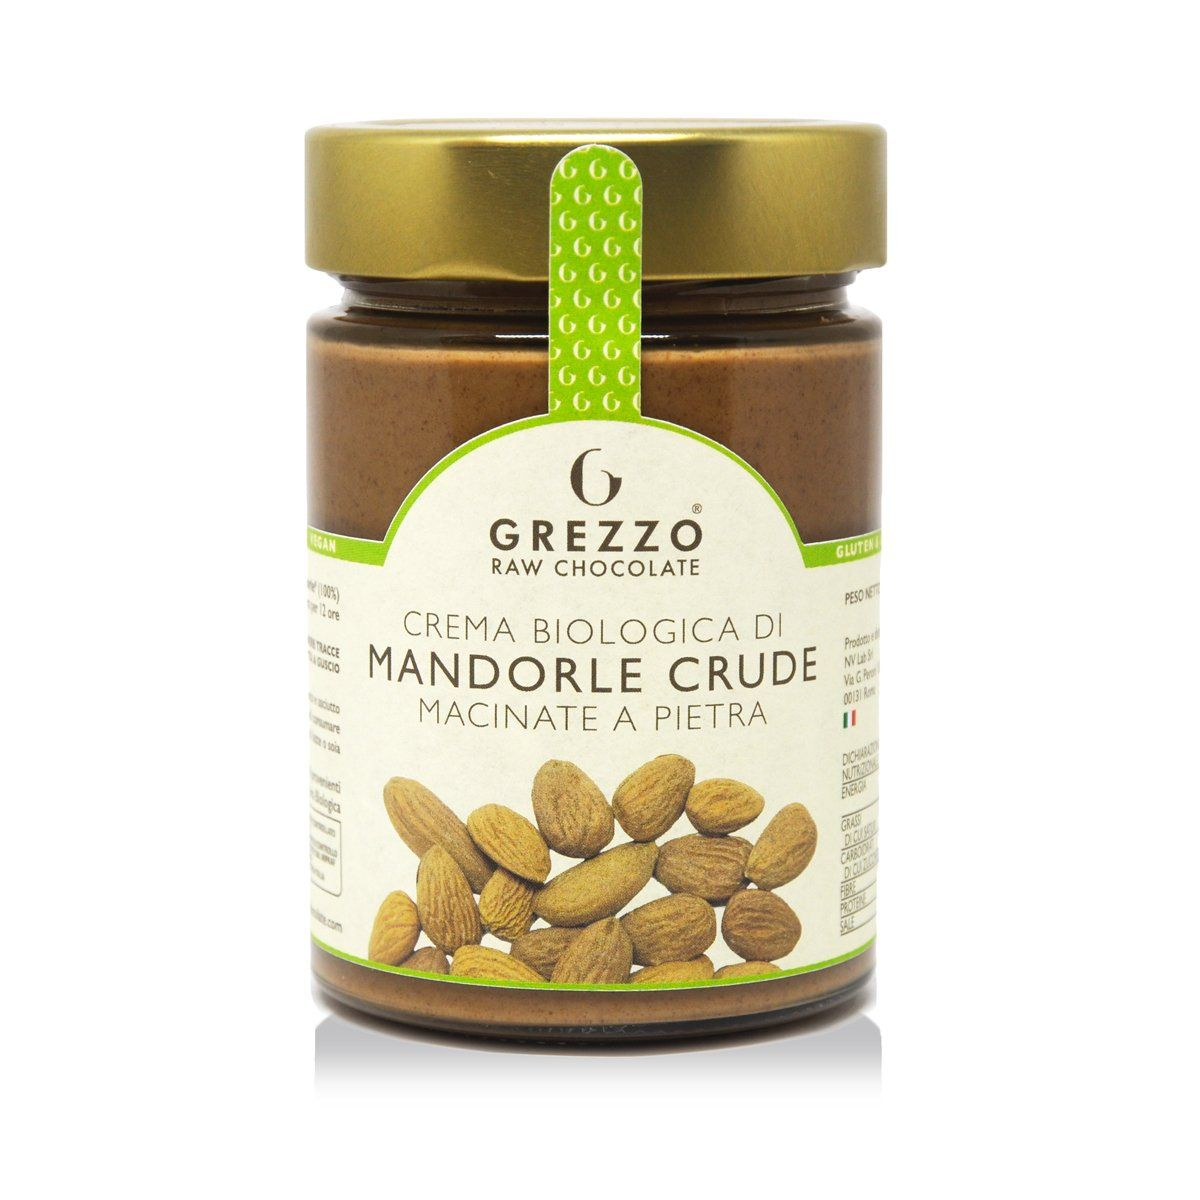 Crema Biologica di Mandorle - Grezzo Raw Chocolate - Core Nutrition